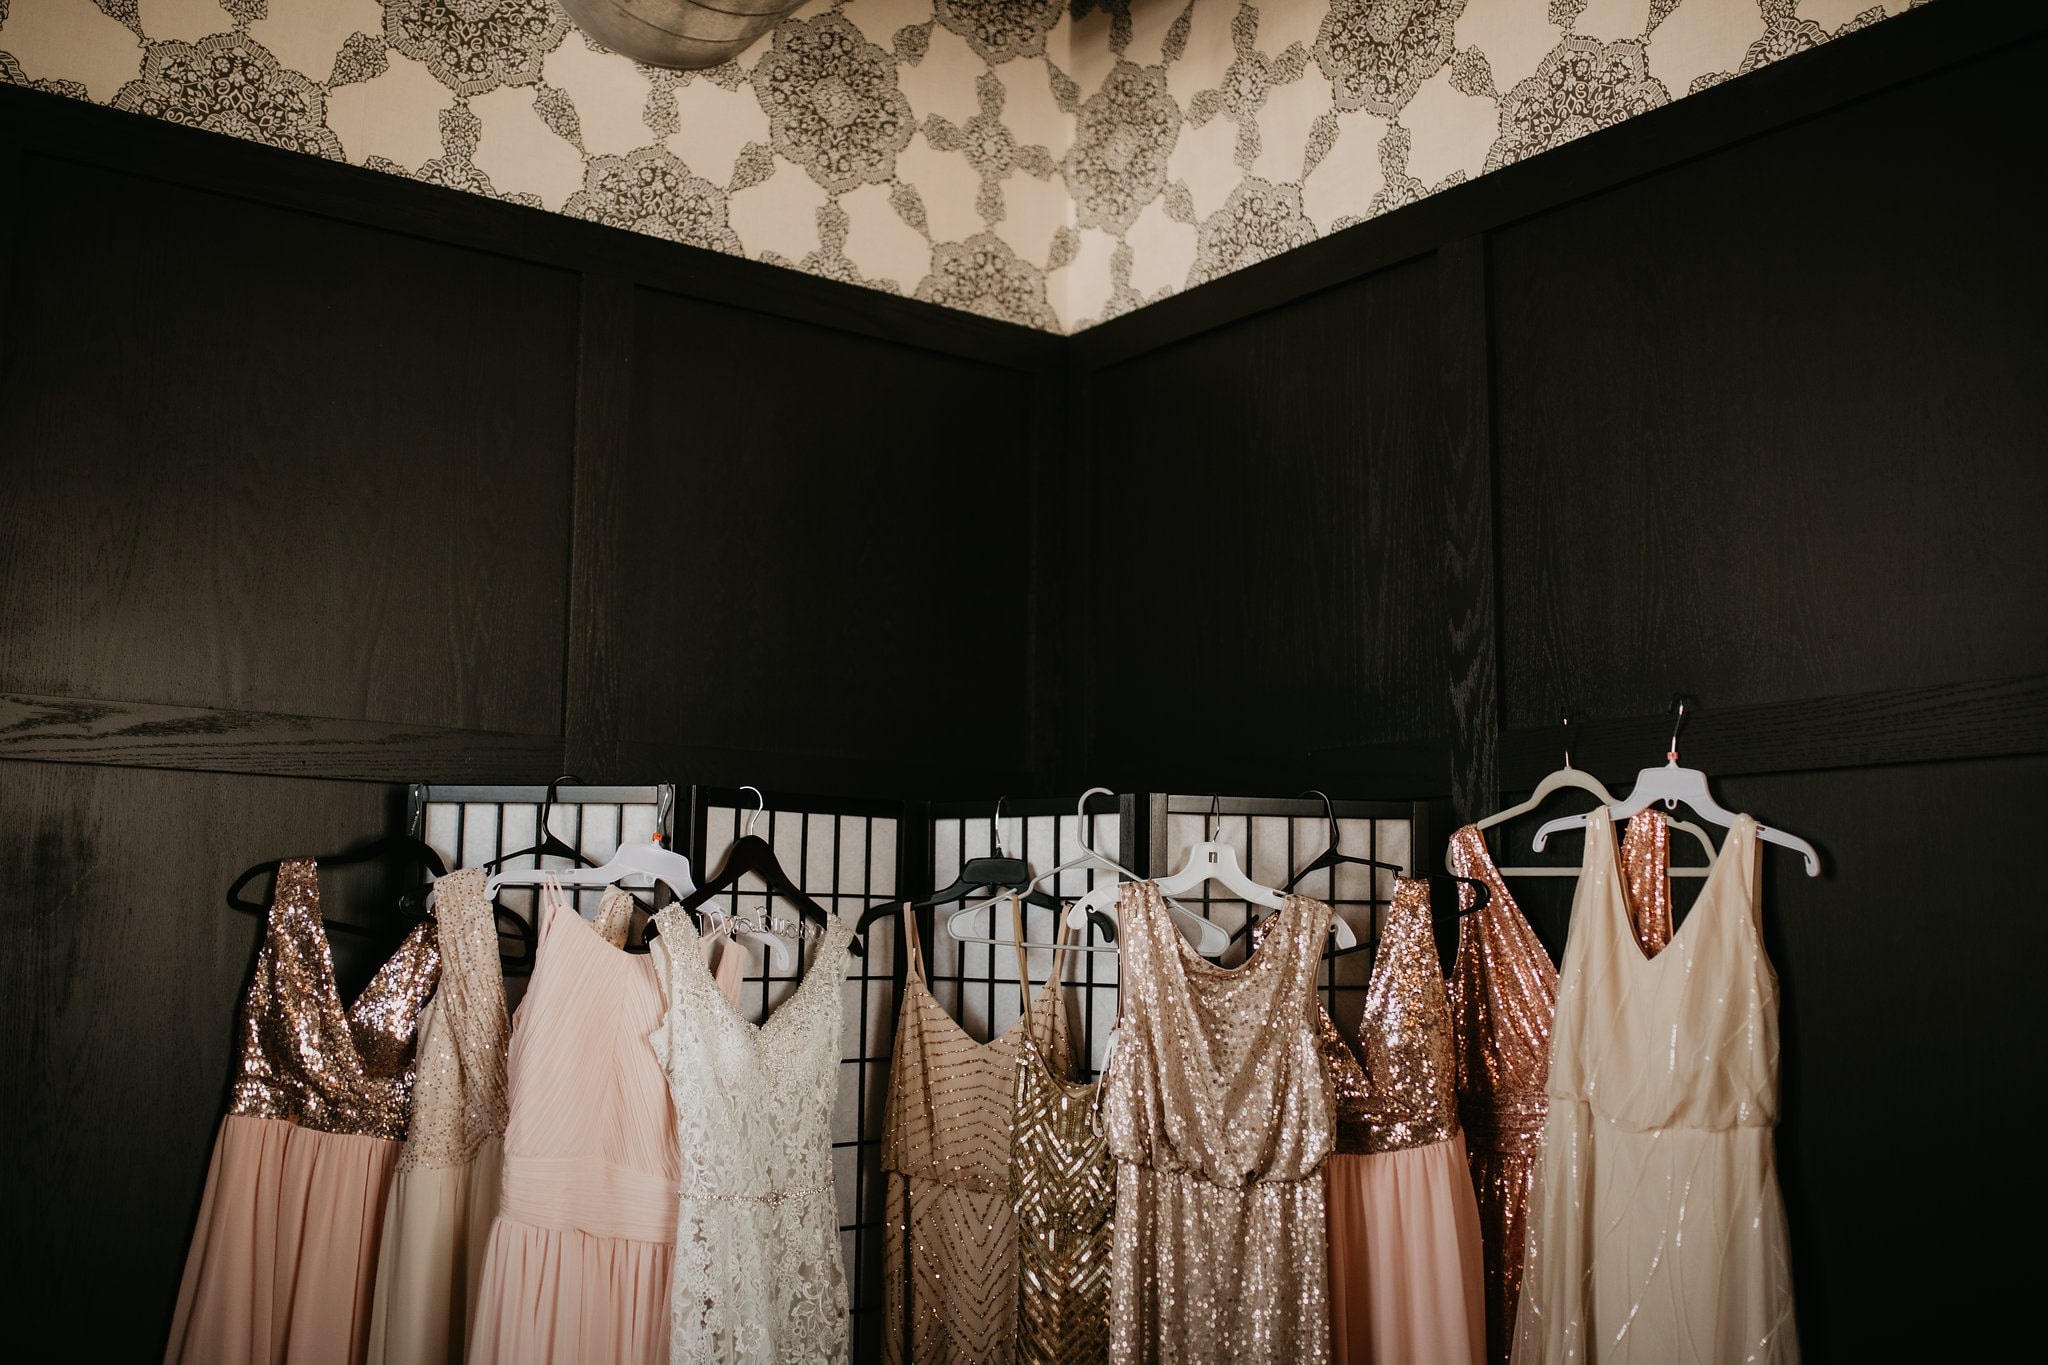 brides and bridesmaid dresses